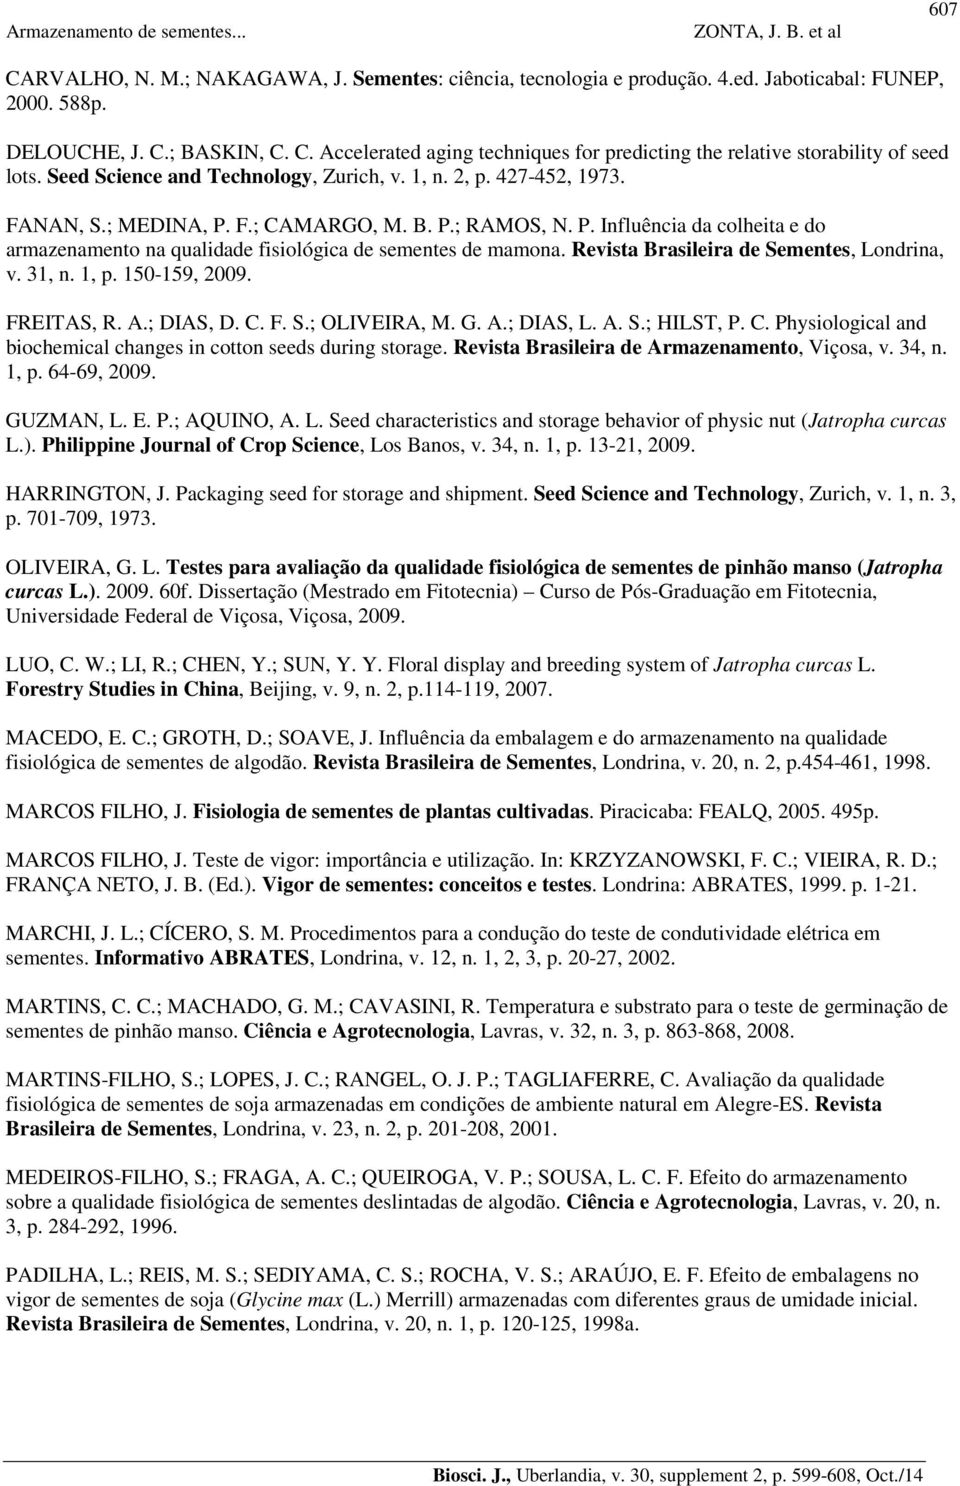 Revista Brasileira de Sementes, Londrina, v. 31, n. 1, p. 150-159, 2009. FREITAS, R. A.; DIAS, D. C. F. S.; OLIVEIRA, M. G. A.; DIAS, L. A. S.; HILST, P. C. Physiological and biochemical changes in cotton seeds during storage.